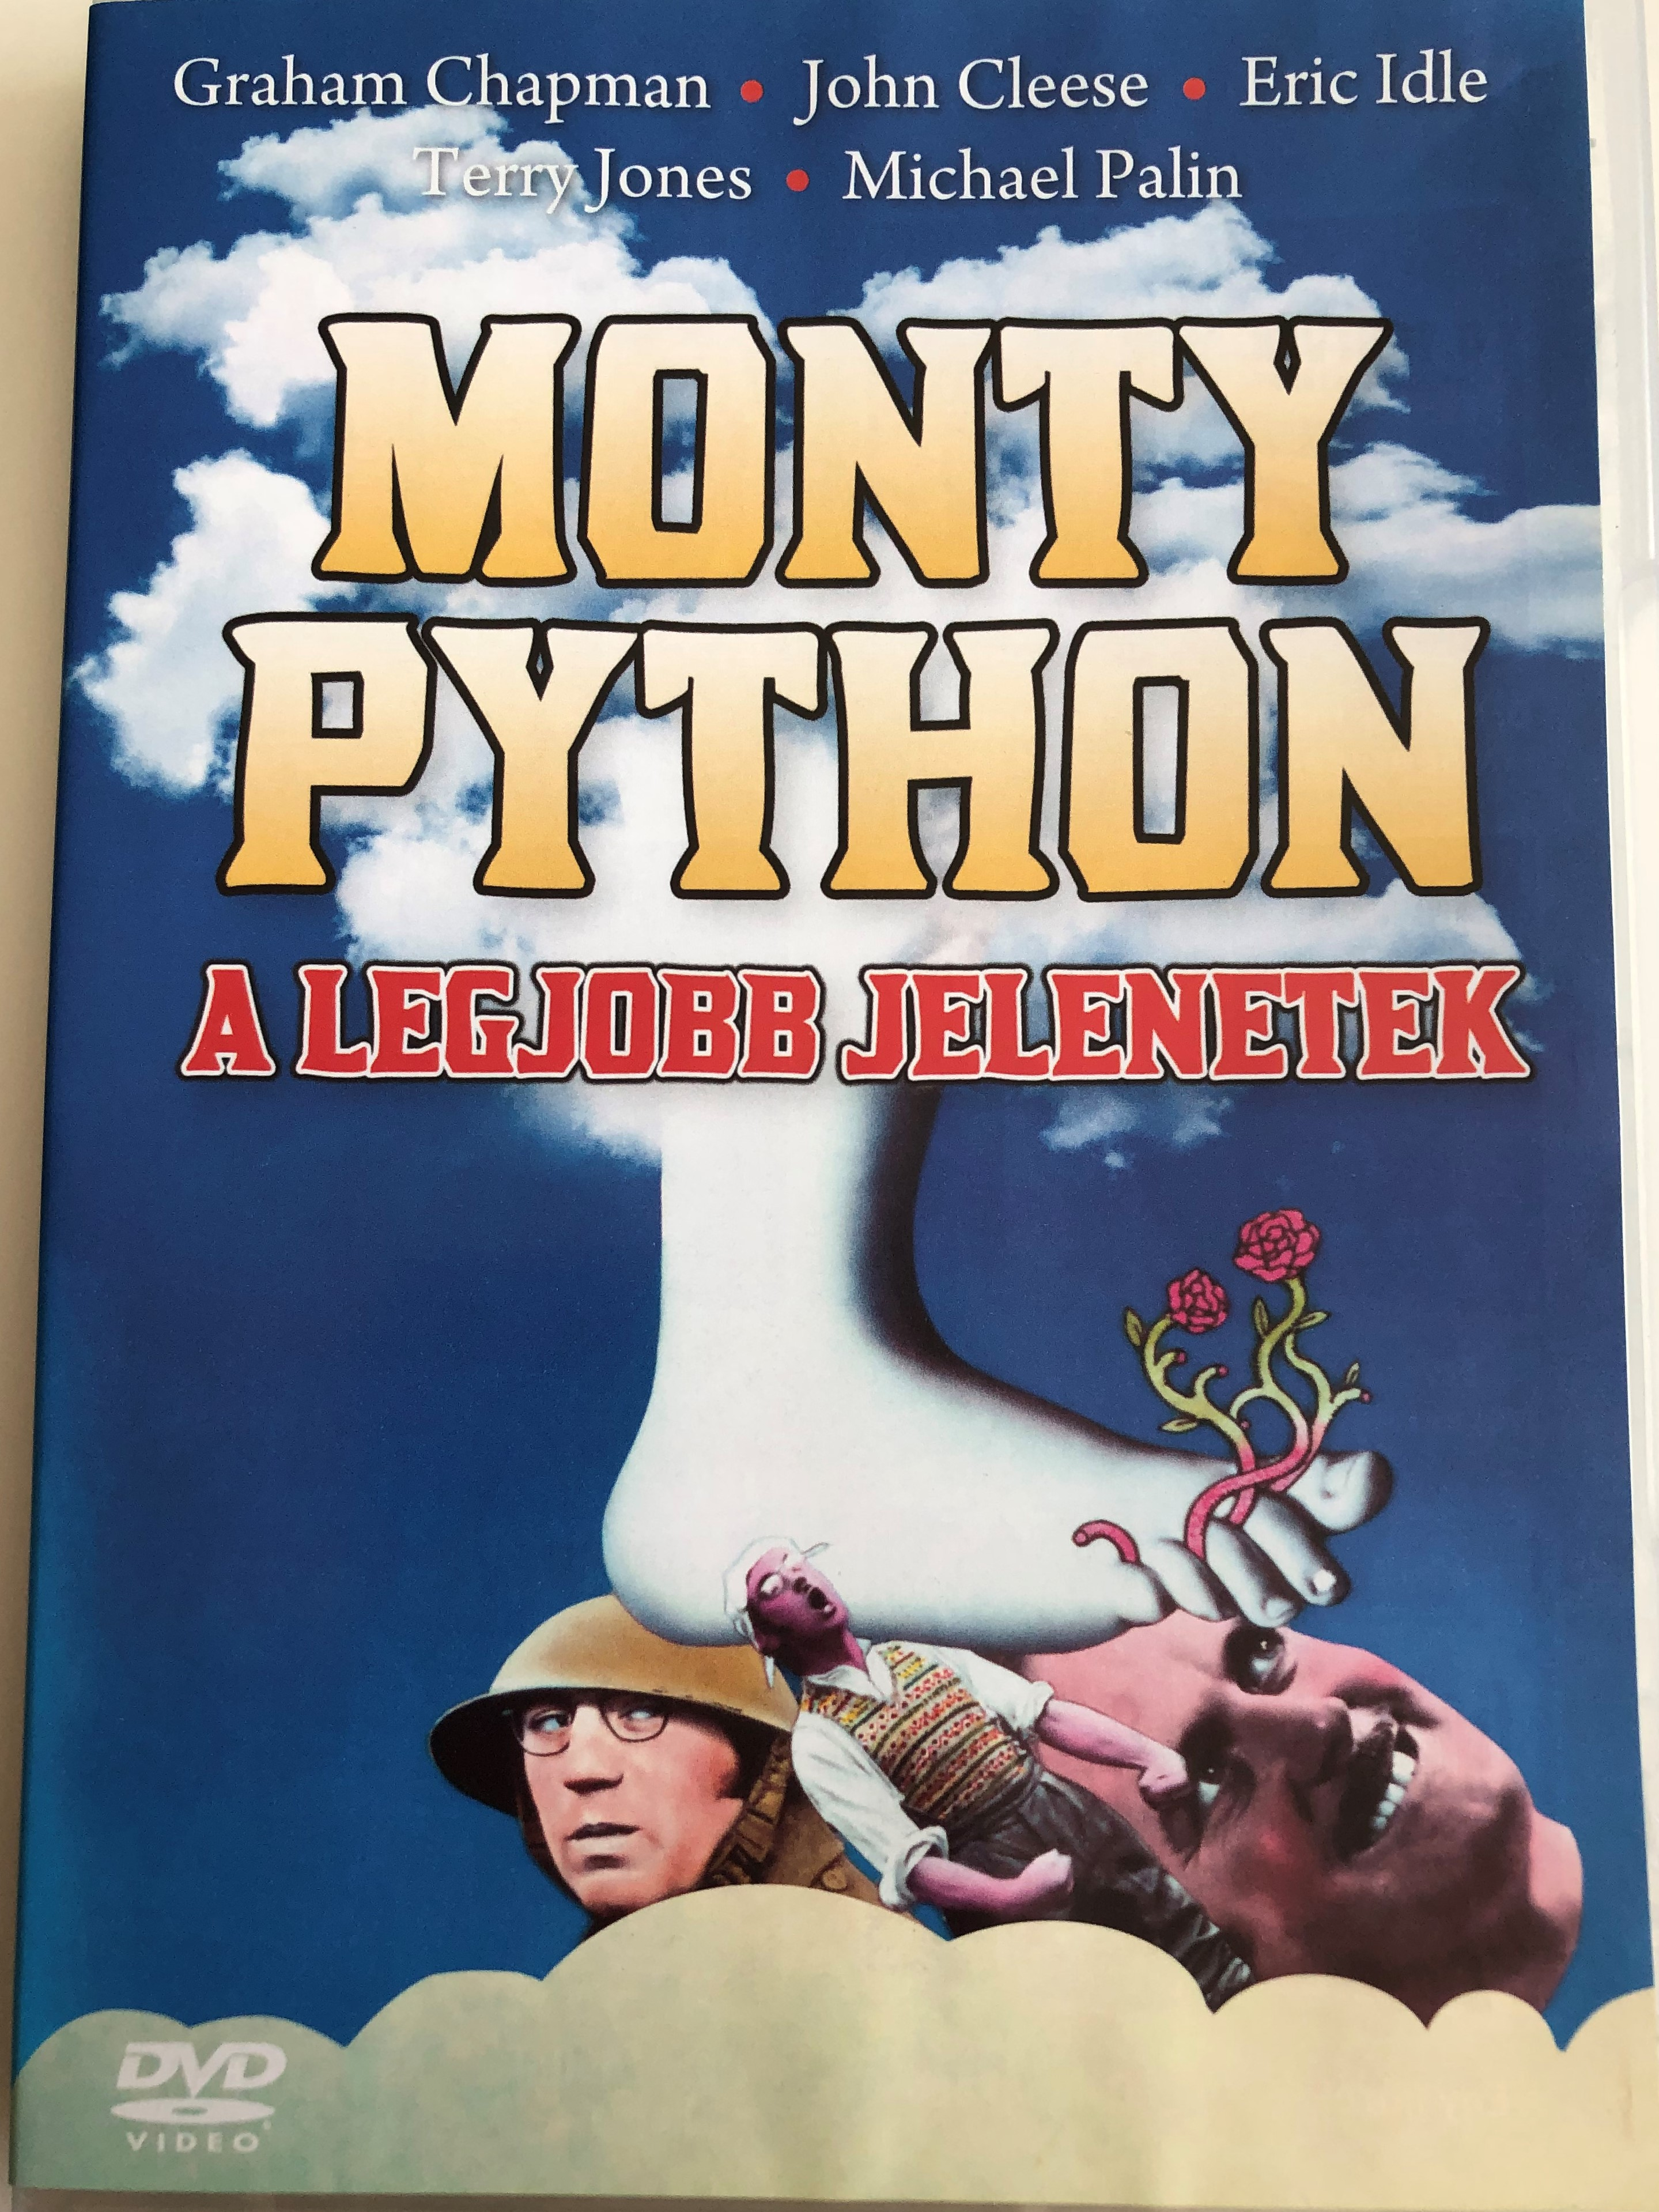 and-now-for-something-completely-different-dvd-1971-monty-python-a-legjobb-jelenetek-directed-by-ian-macnaughton-starring-graham-chapman-john-cleese-eric-idle-terry-jones-michael-palin-1-.jpg